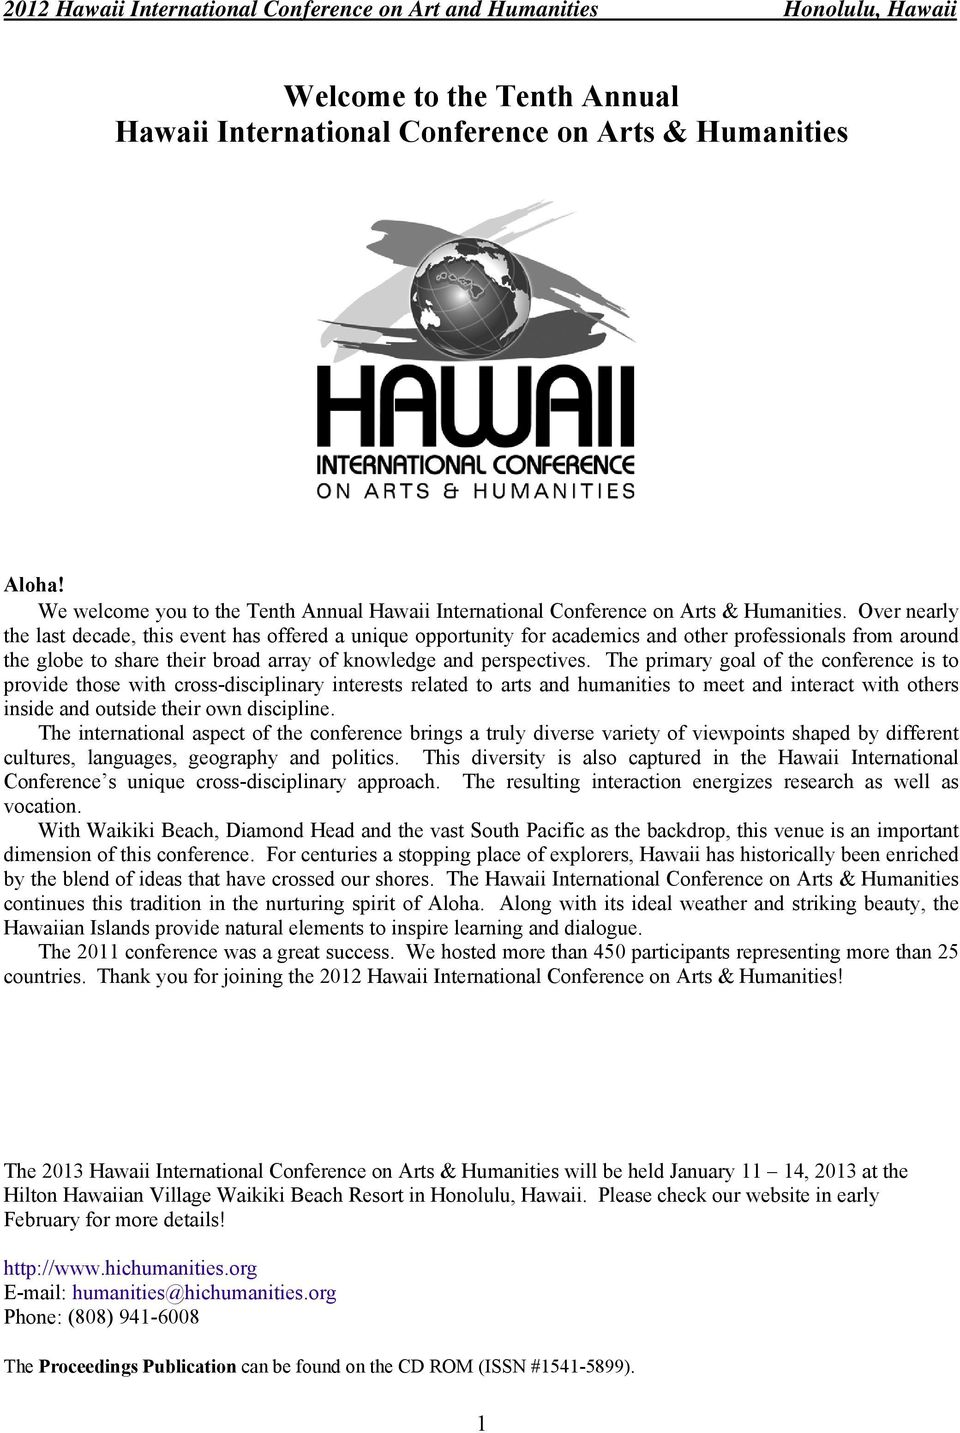 Welcome to the Tenth Annual Hawaii International Conference